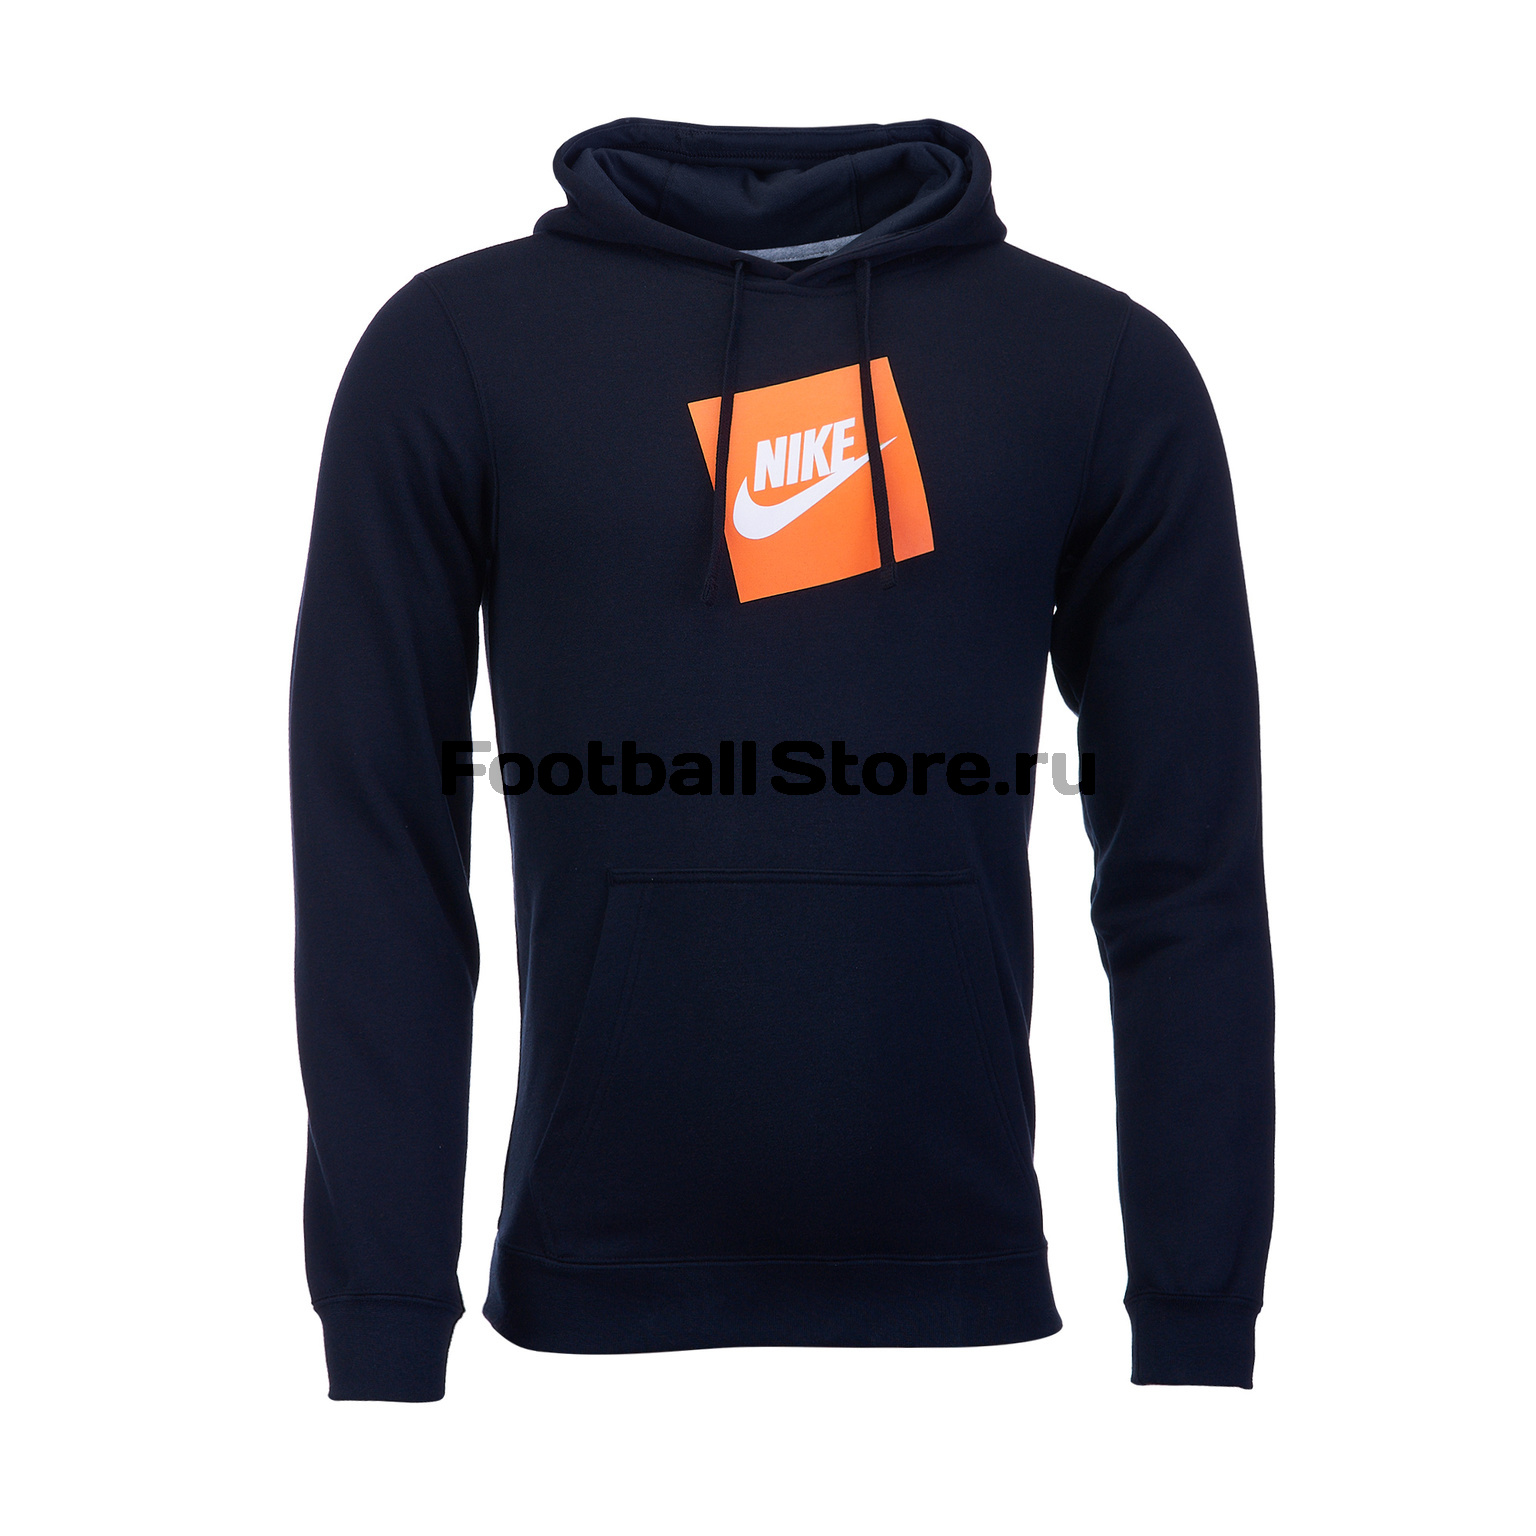 Толстовка Nike Sportswear Hoodie 928719-010 patterns of repetition in persian and english